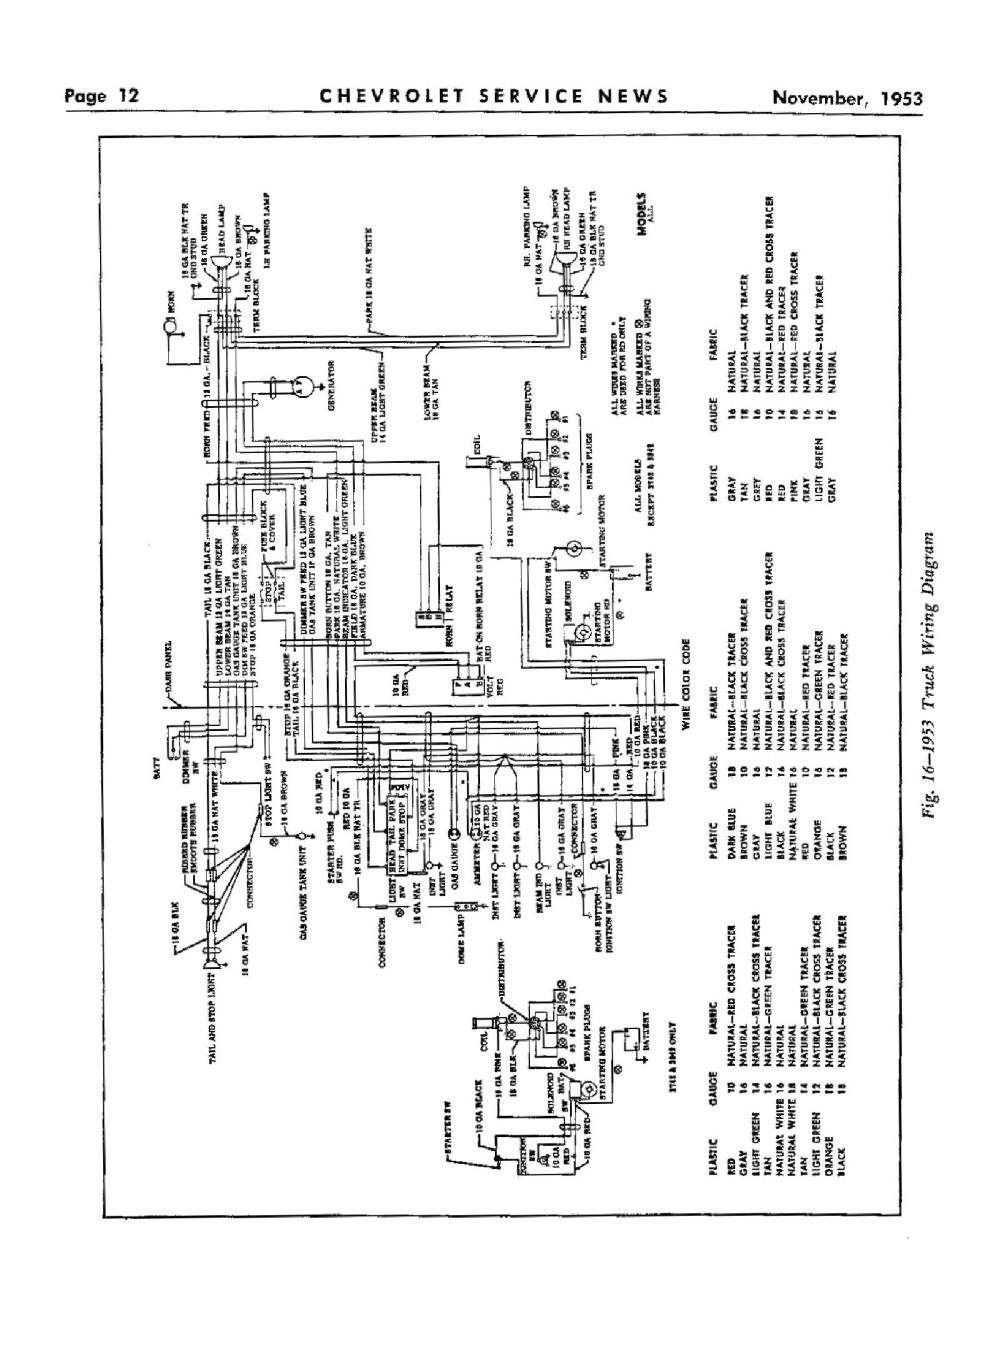 medium resolution of 1951 chevy car fleetline wire diagram wiring diagram sample 1951 chevrolet wiring diagrams 1951 chevrolet wiring diagram